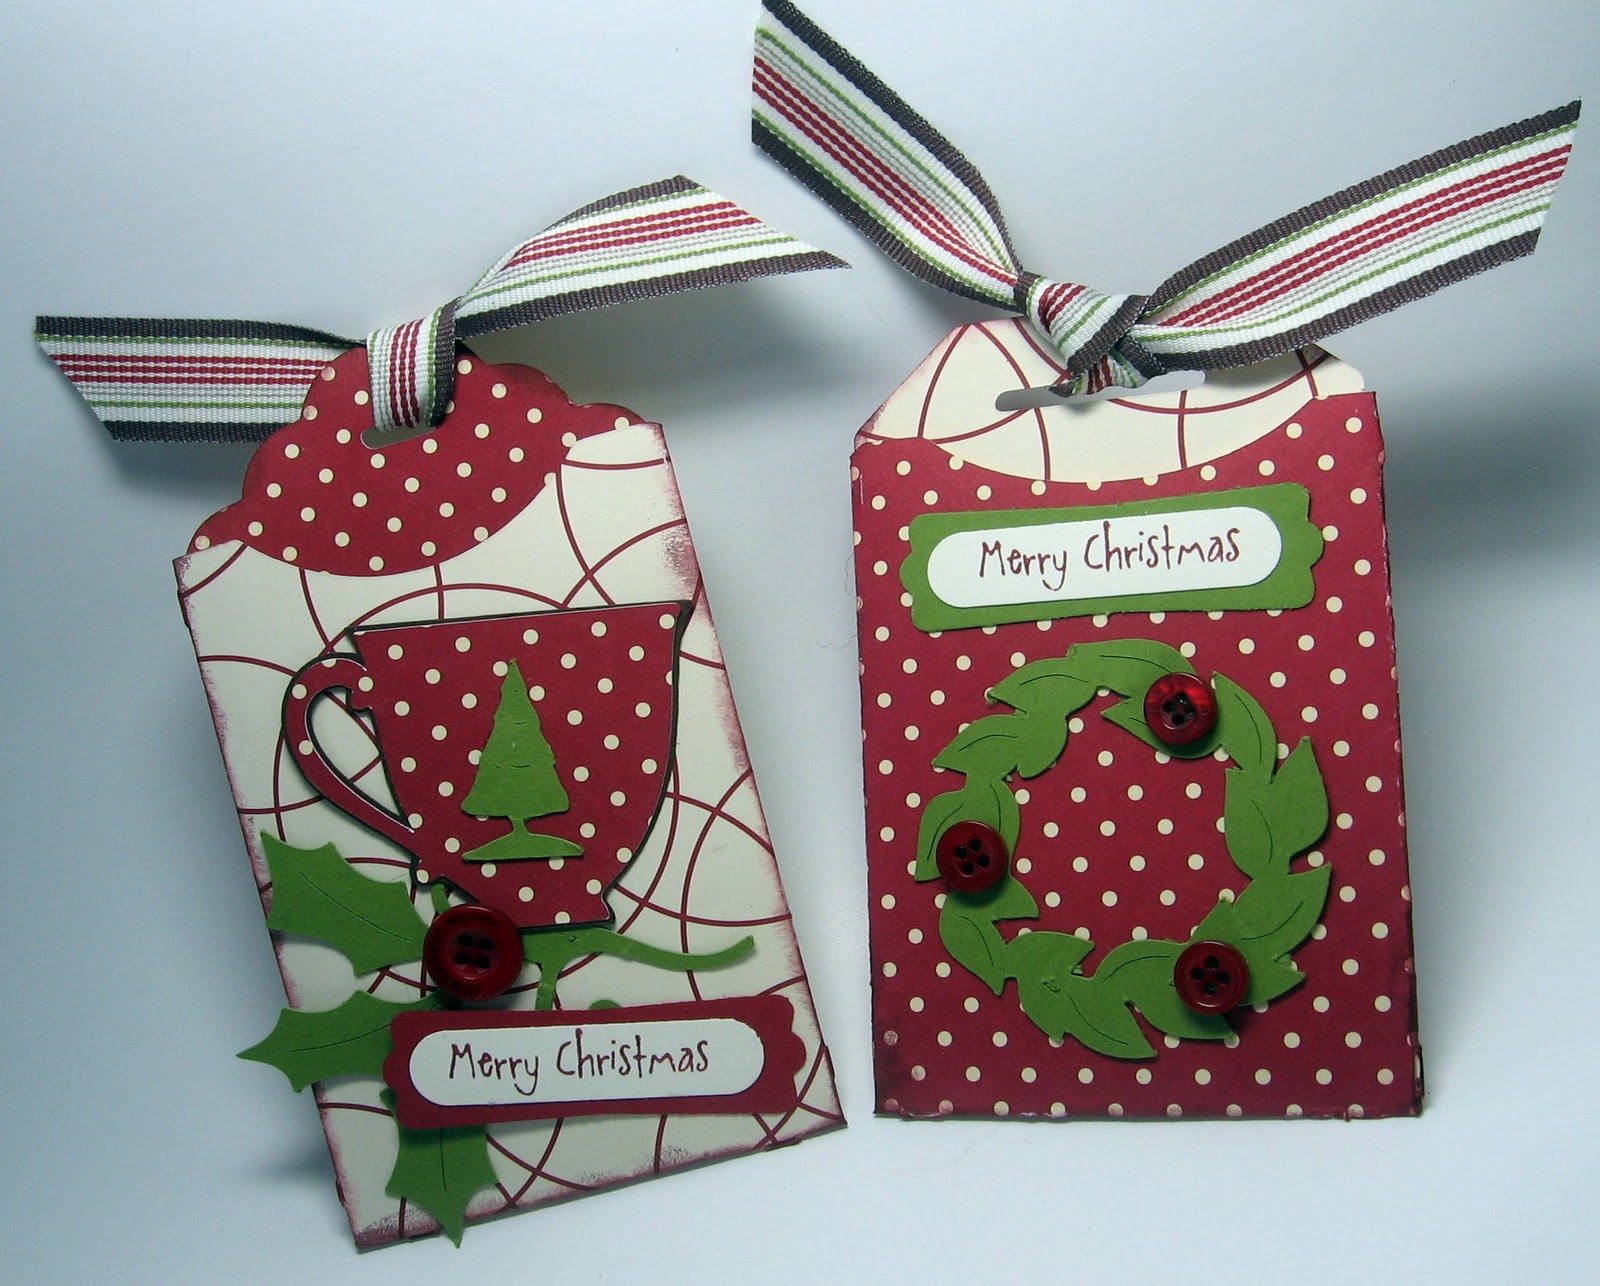 stamping up north with laurie: Cricut Christmas gift cards holders